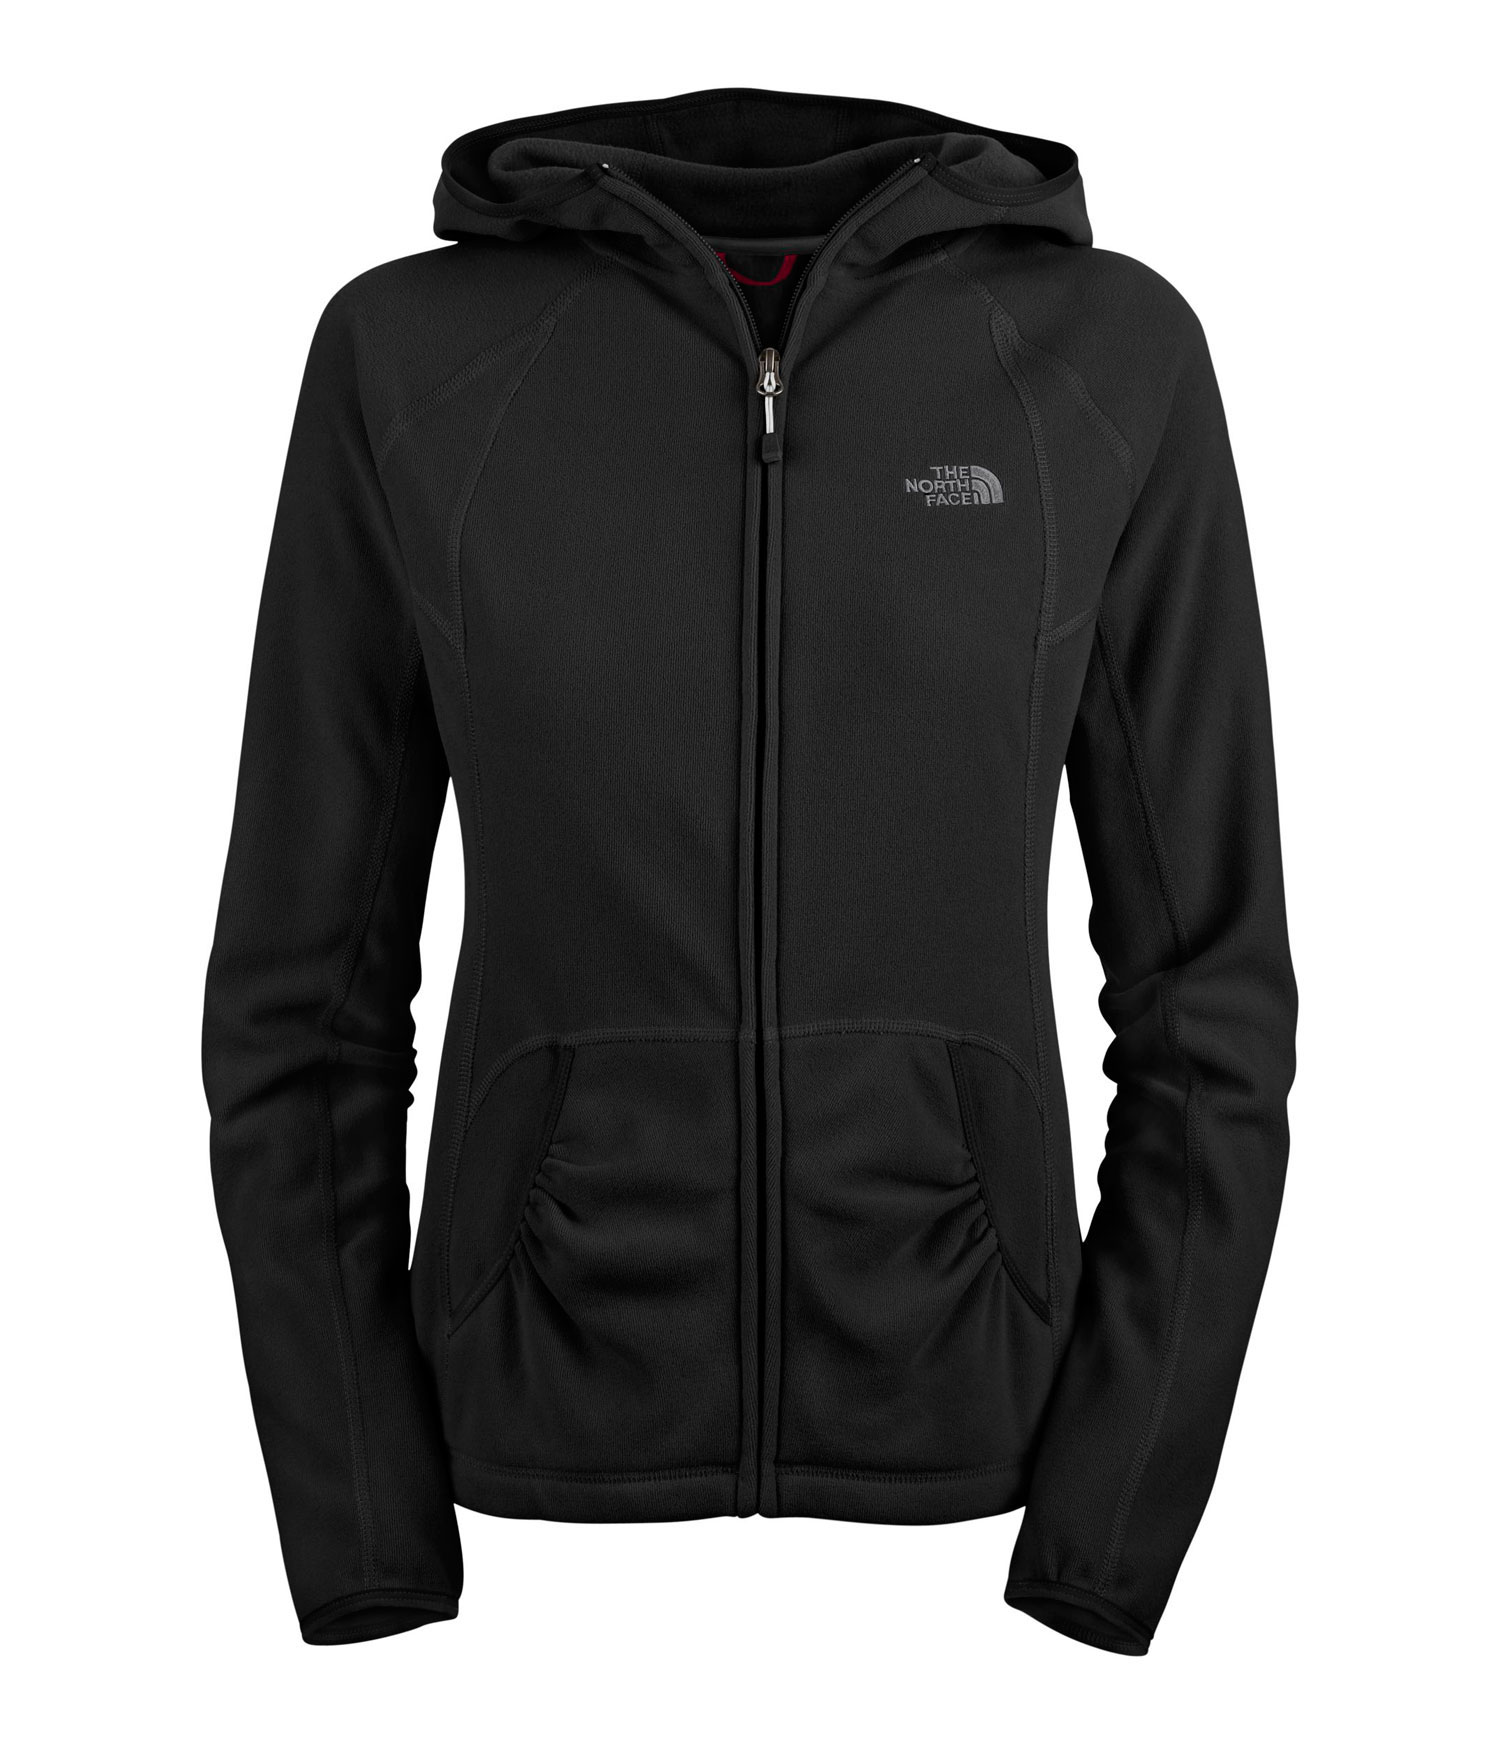 Camp and Hike Redesign of our top-selling TKA 100 fleece hoodie delivers sleeker, modernized lines with the same great fit; perfect for hiking, climbing or around town. Key Features of The North Face Tka 100 Texture Masonic Hoodie: Avg Weight: 250 g (8.8 oz) Fabric: 190 g/m2 Polartec® Classic 100 Micro—100% polyester (bluesign® approved fabric) Ultraviolet Protection Factor (UPF) Provides warmth without the weight and bulk of traditional insulating fabrics Highly breathable to provide comfort in all activities Dries quickly to minimize heat loss Pill-resistant face and back Zip-up hoodie with lower hand pockets Revised pocket shape and raglan lines Media-friendly pocket and loop - $70.00